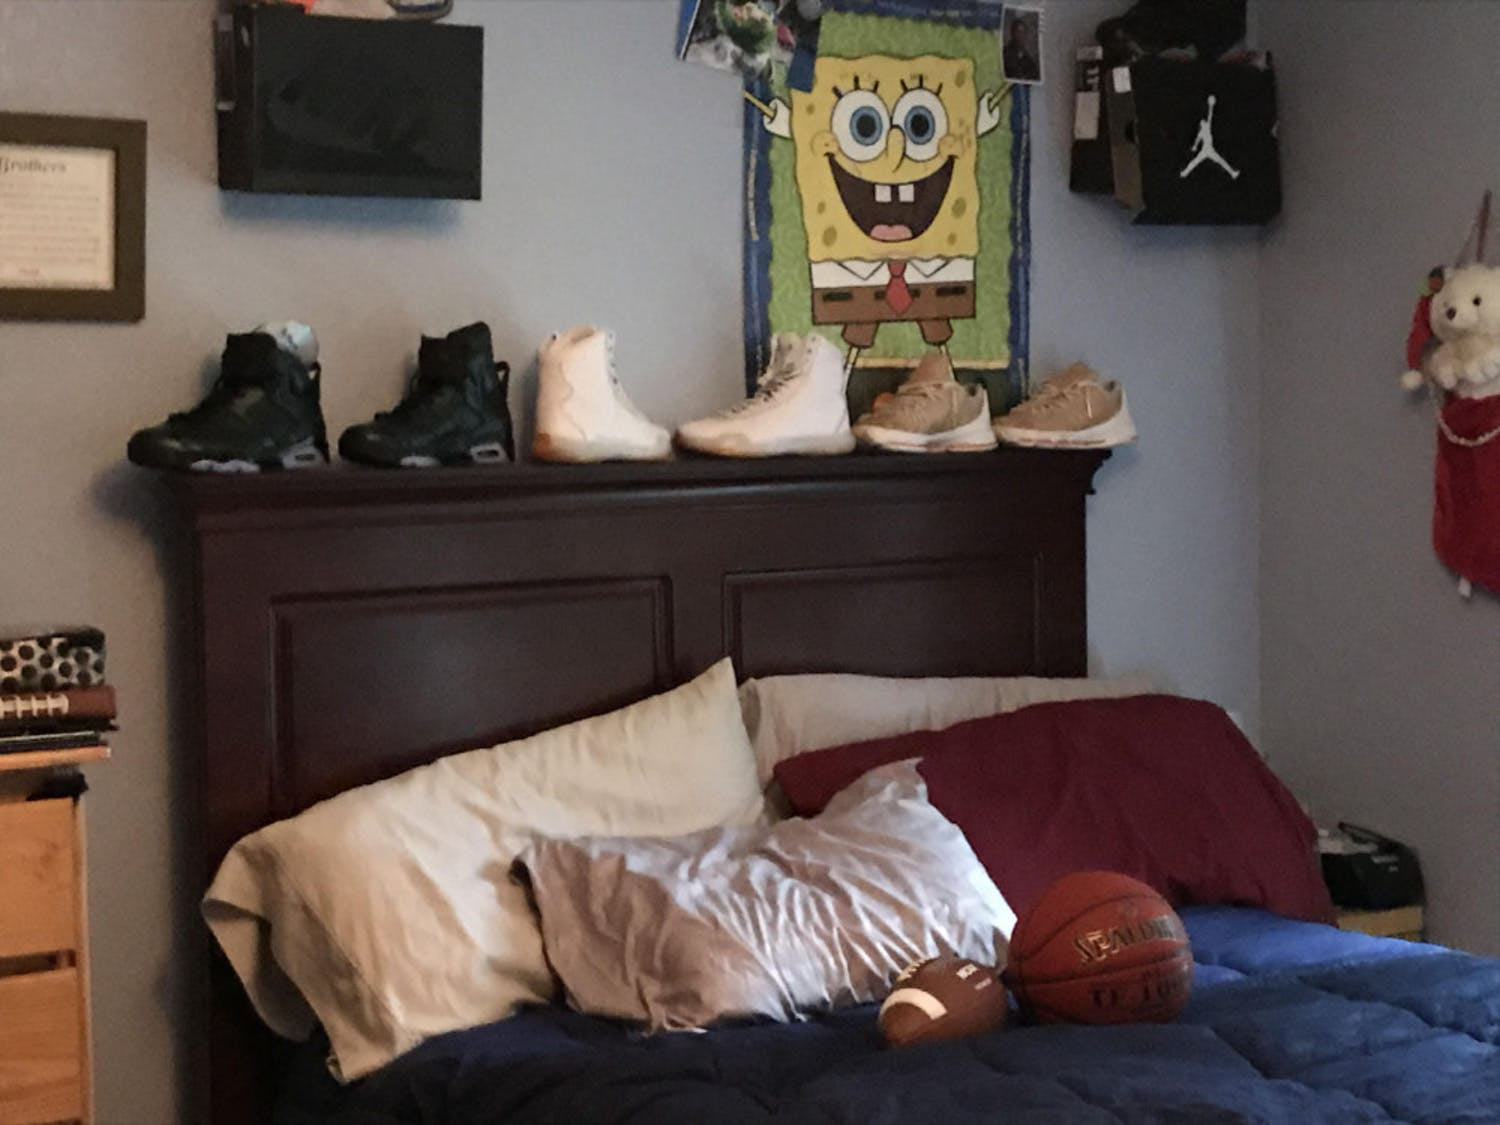 Sean's family keeps his bed made, his shoes on the headboard and his Spongebob Squarepants poster on the wall. Sean's Mario Kart backpack and some video games decorate the floor nearby.